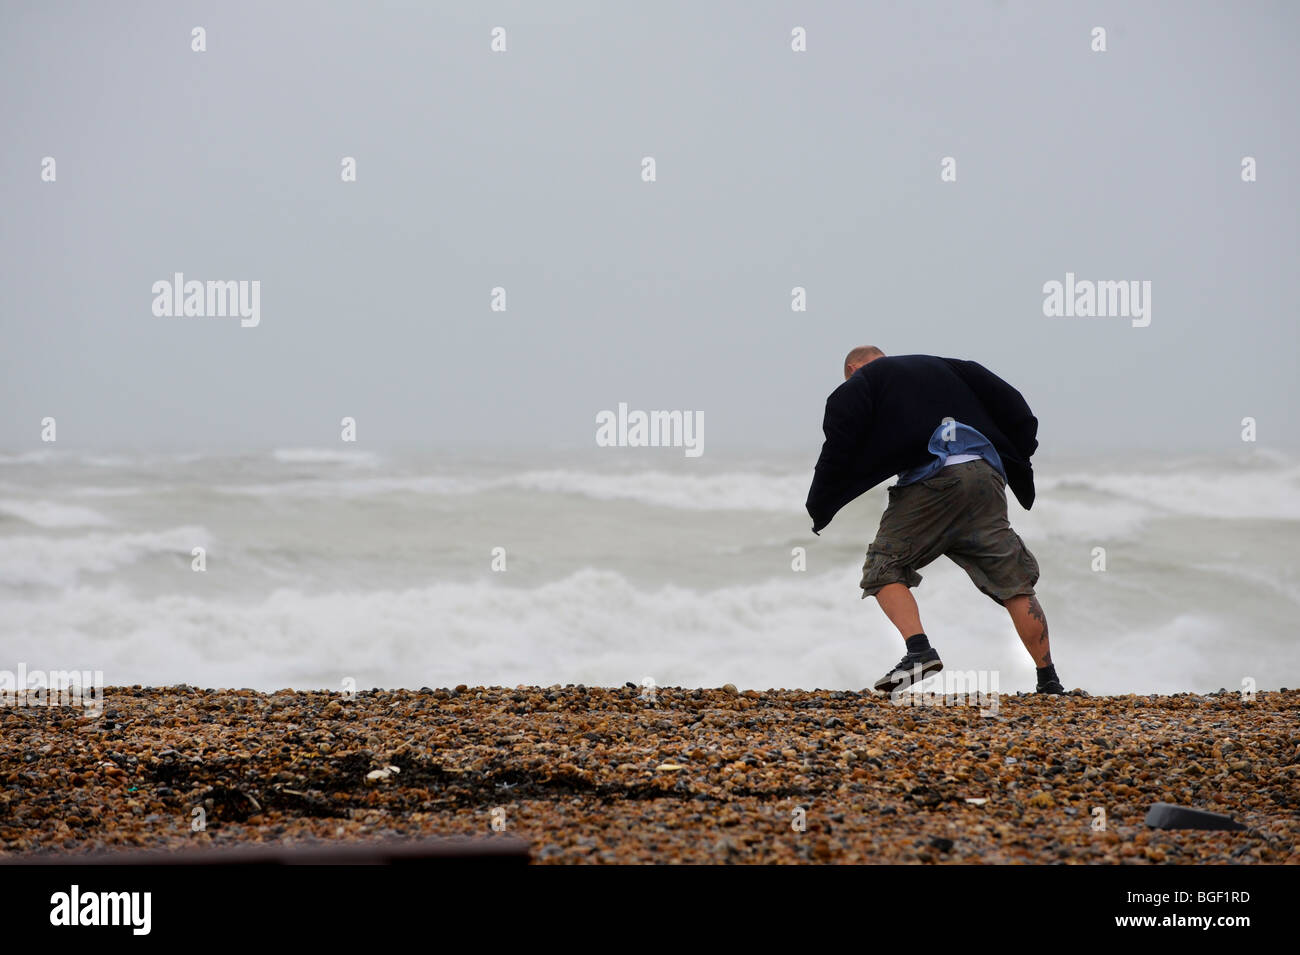 Stormy weather at Seaford in Sussex attracts people to the beach. This man is seen struggling to walk in the gale - Stock Image